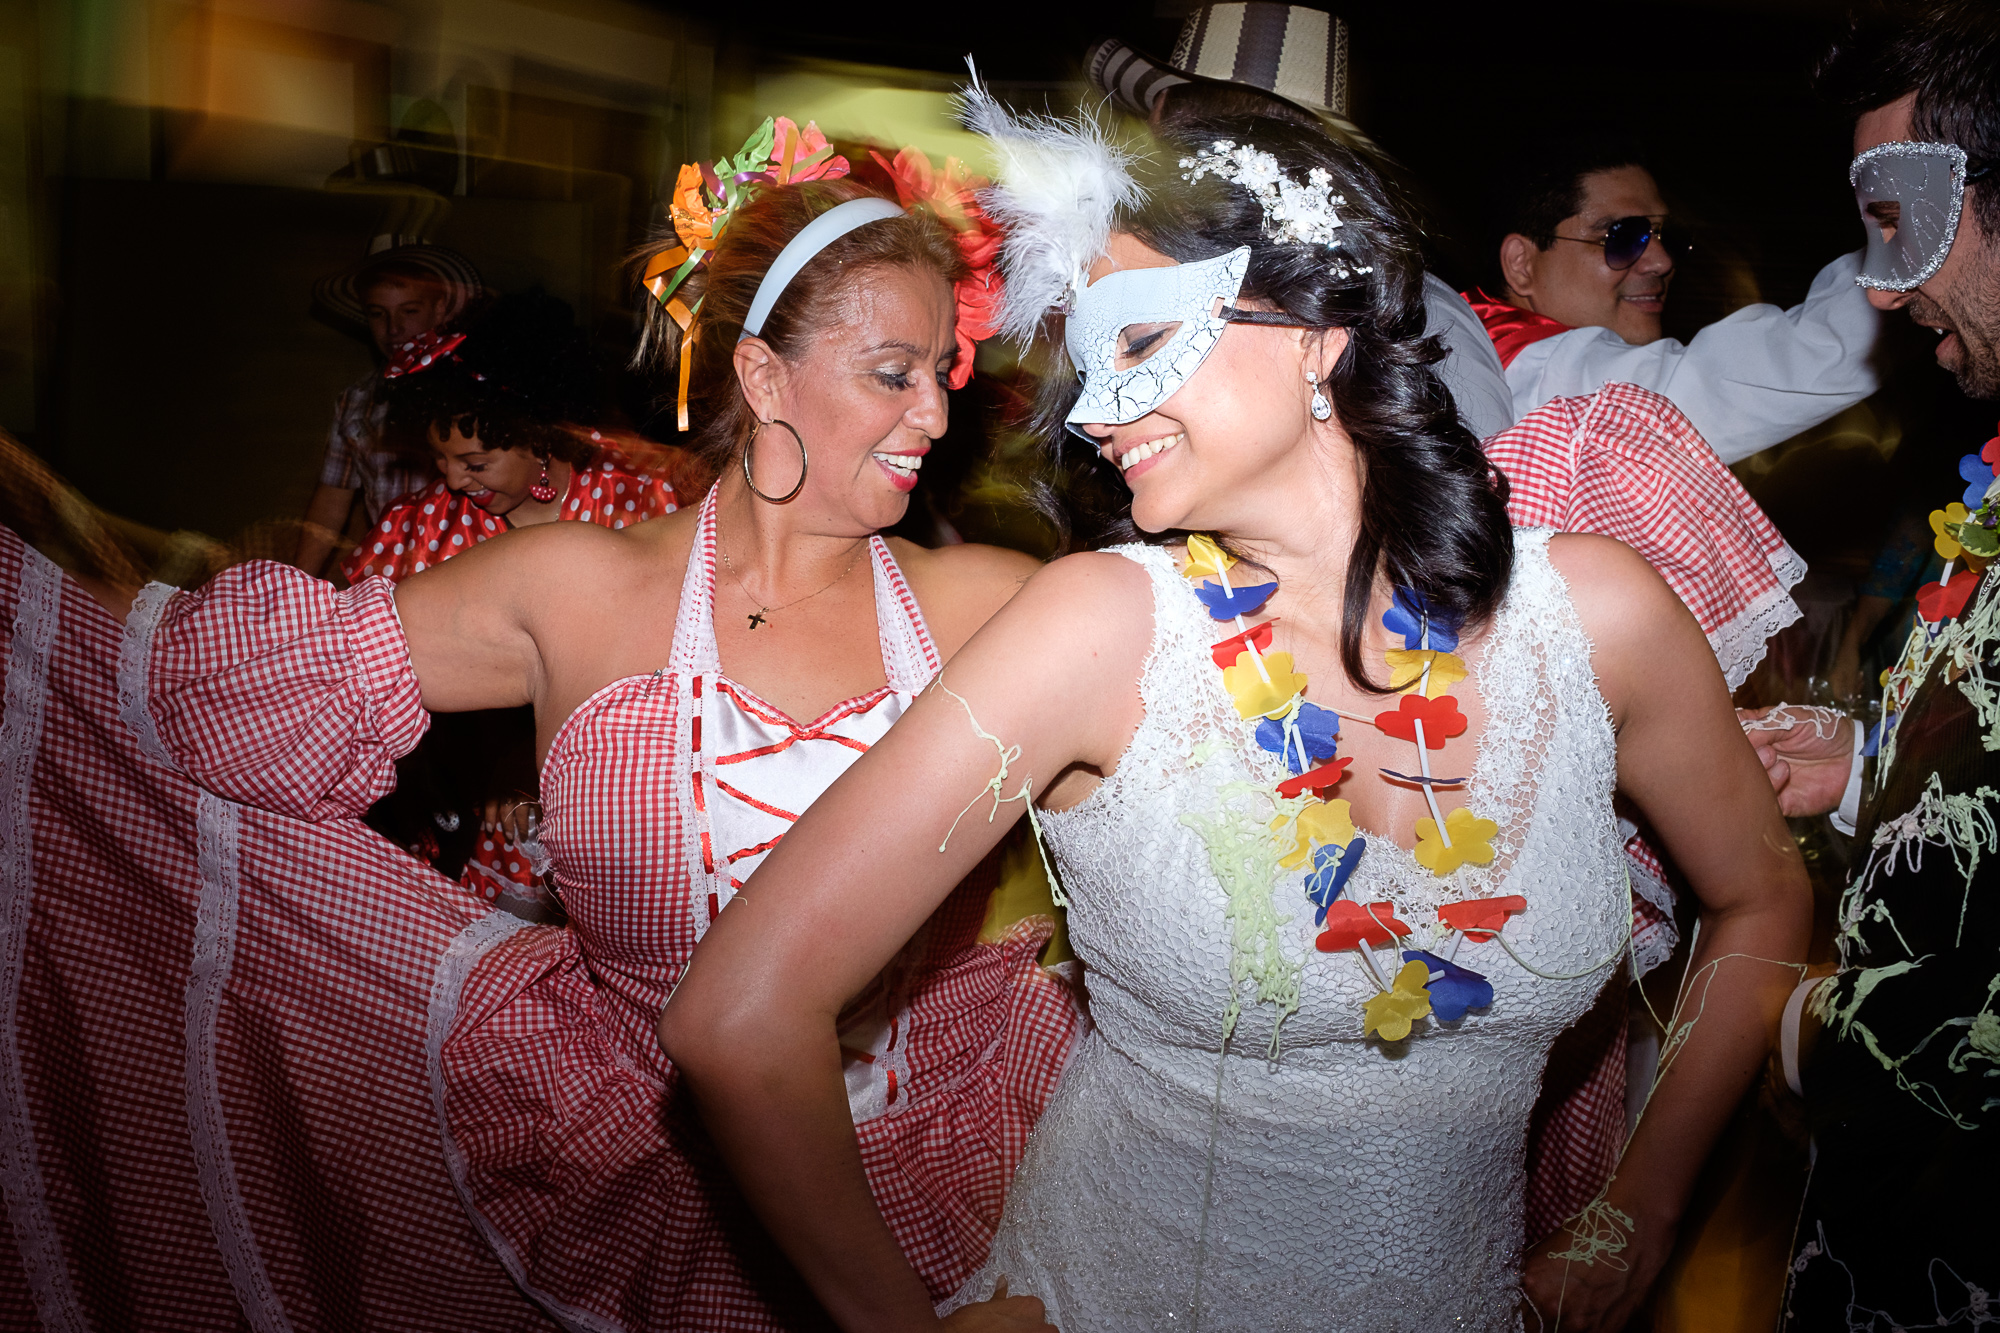 Maria dances with a member of a Columbian dance troop who helped open up the dance floor at their Toronto wedding reception.